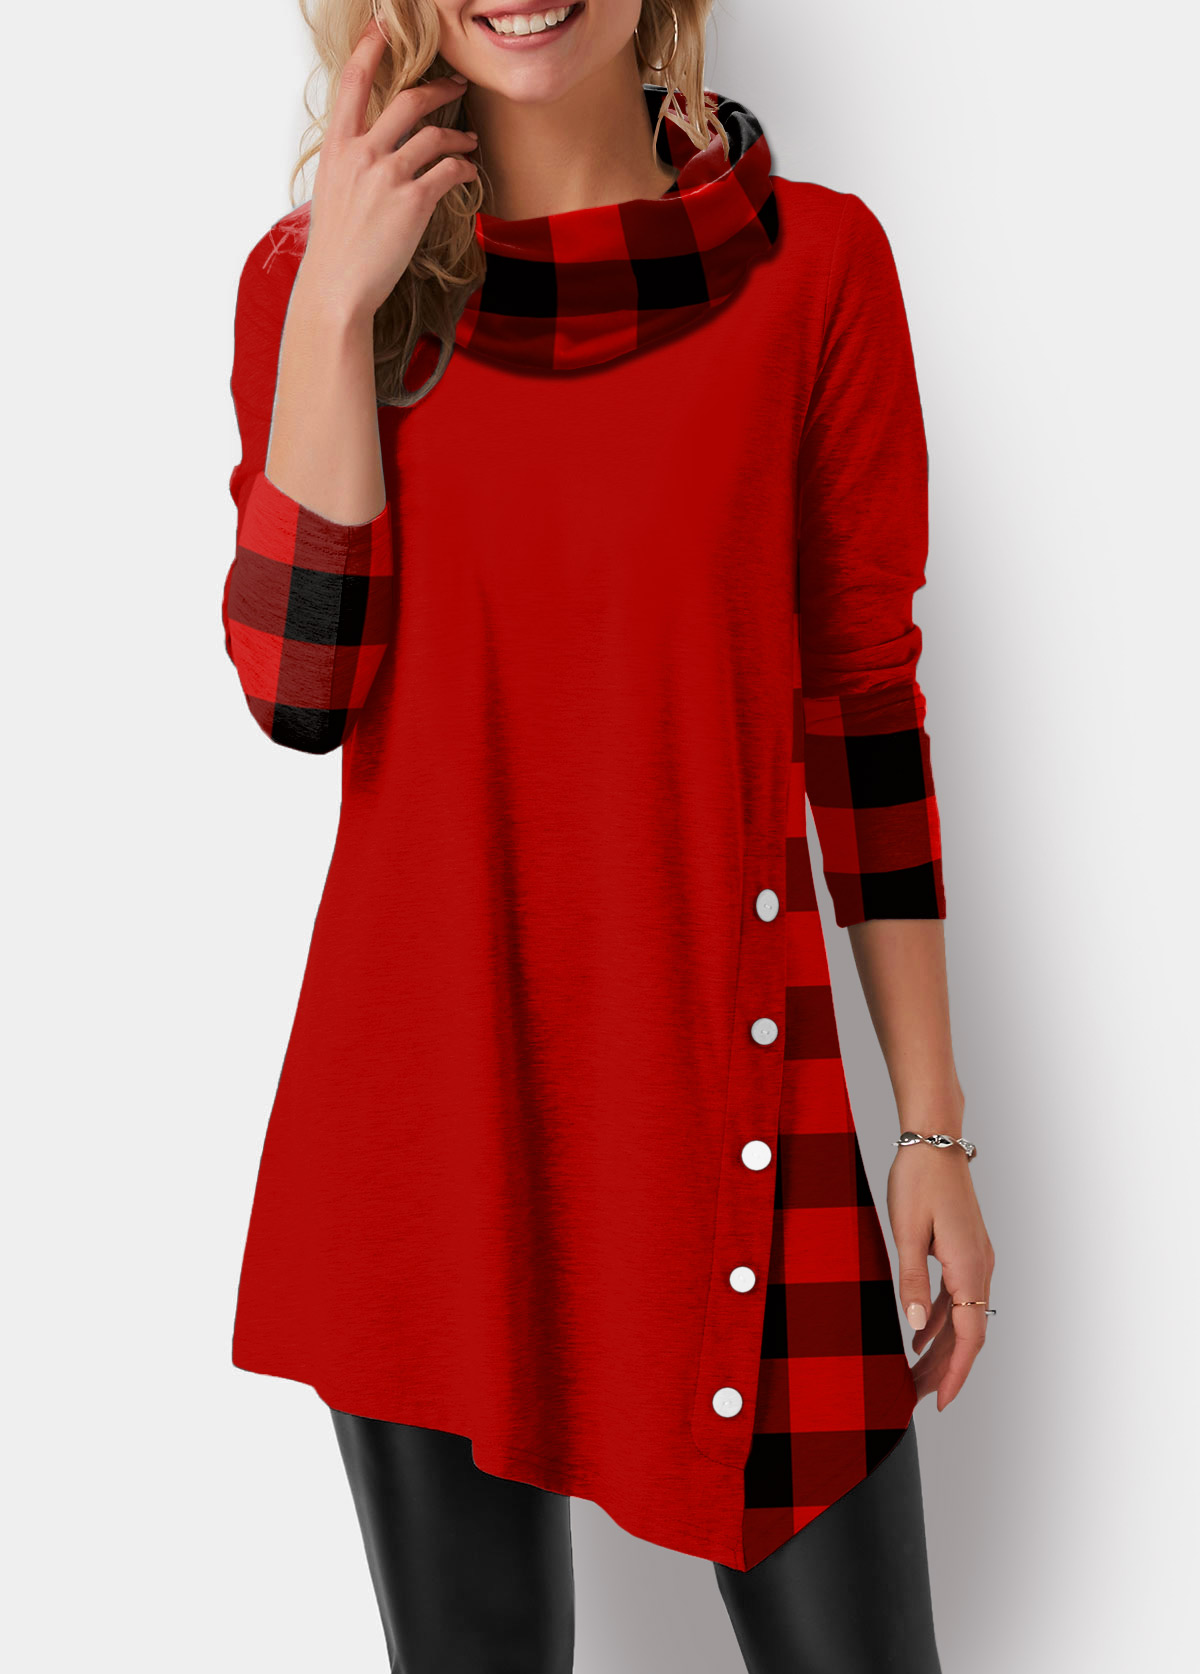 ROTITA Asymmetric Hem Cowl Neck Plaid Print Tunic Top